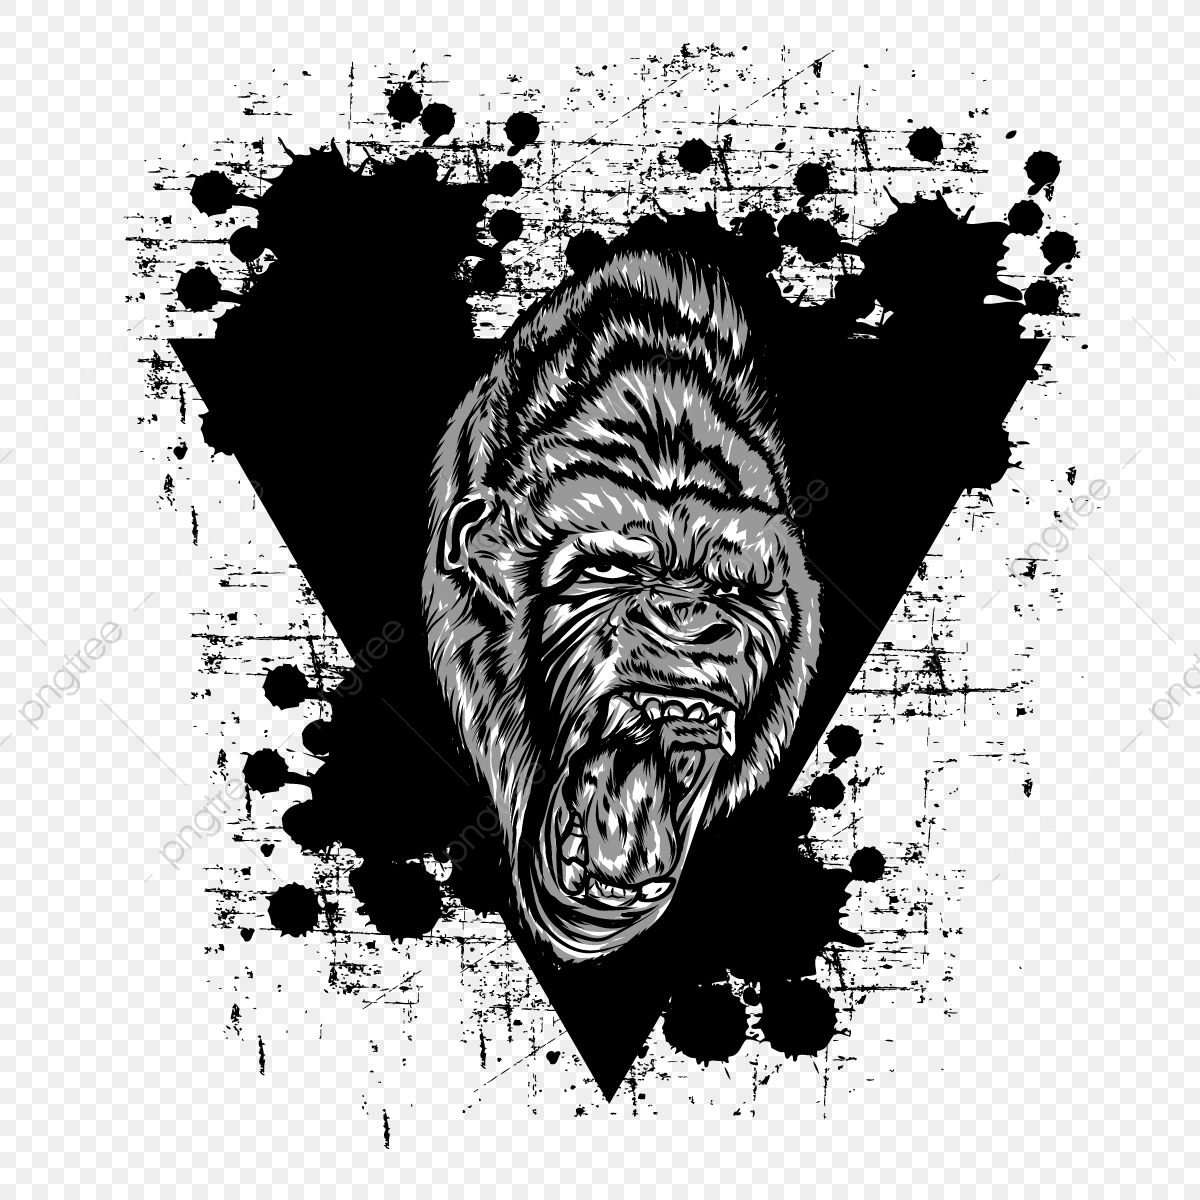 Gorilla Pooping Png - Angry Gorilla Design, Angry, Gorilla, Beast PNG and Vector with ...